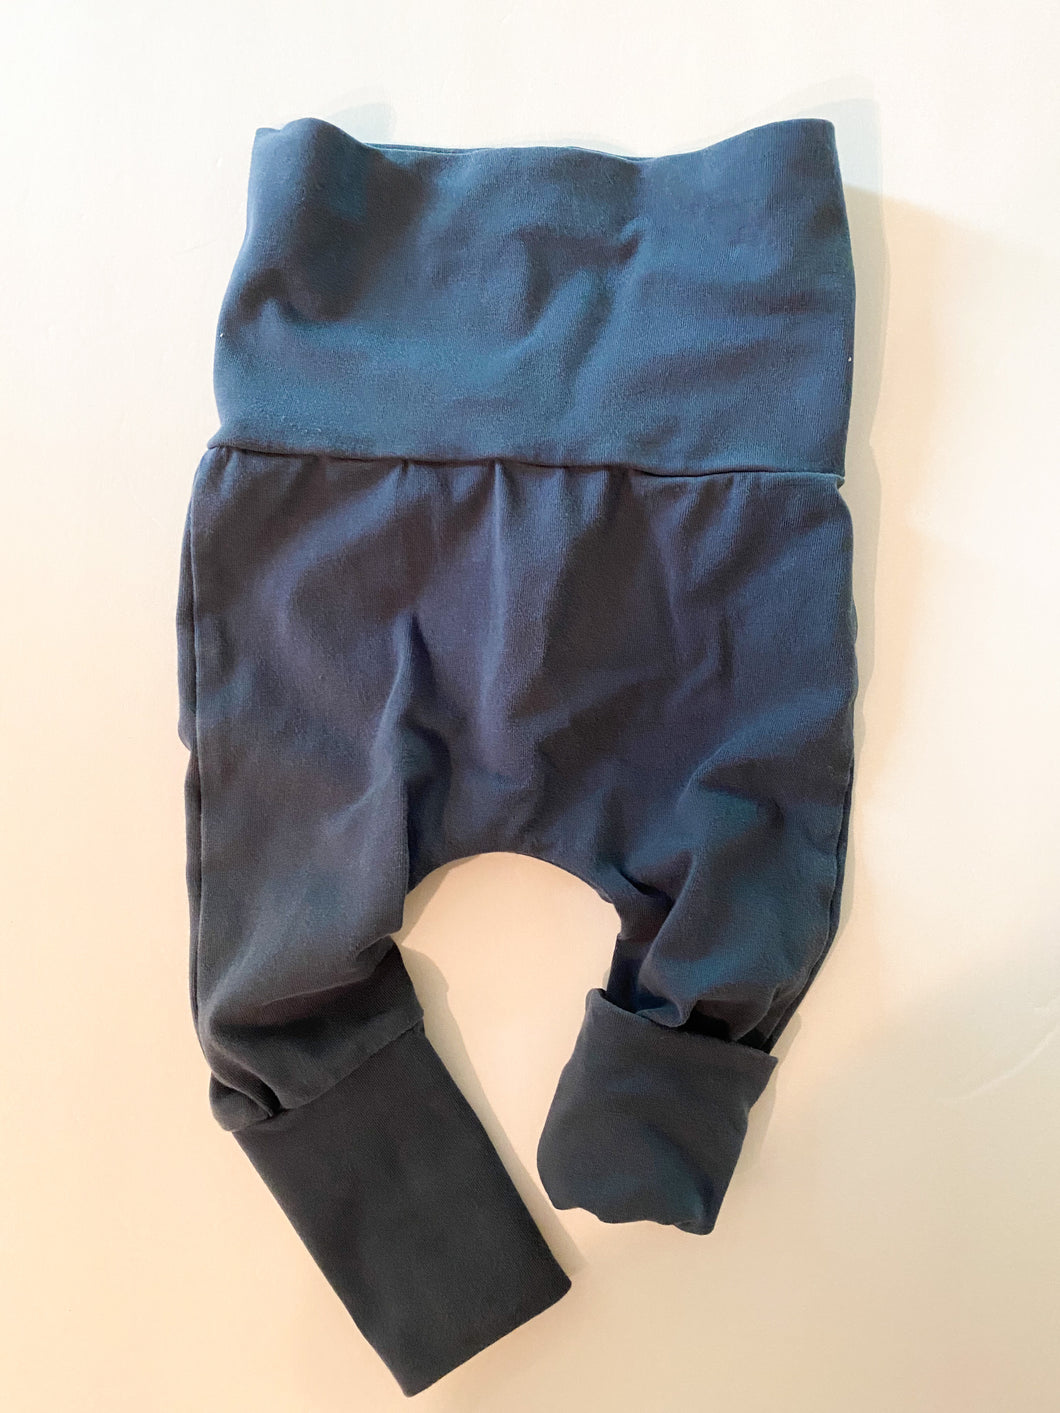 LAB Navy Nb-9m Leggings ( Very good Condition)